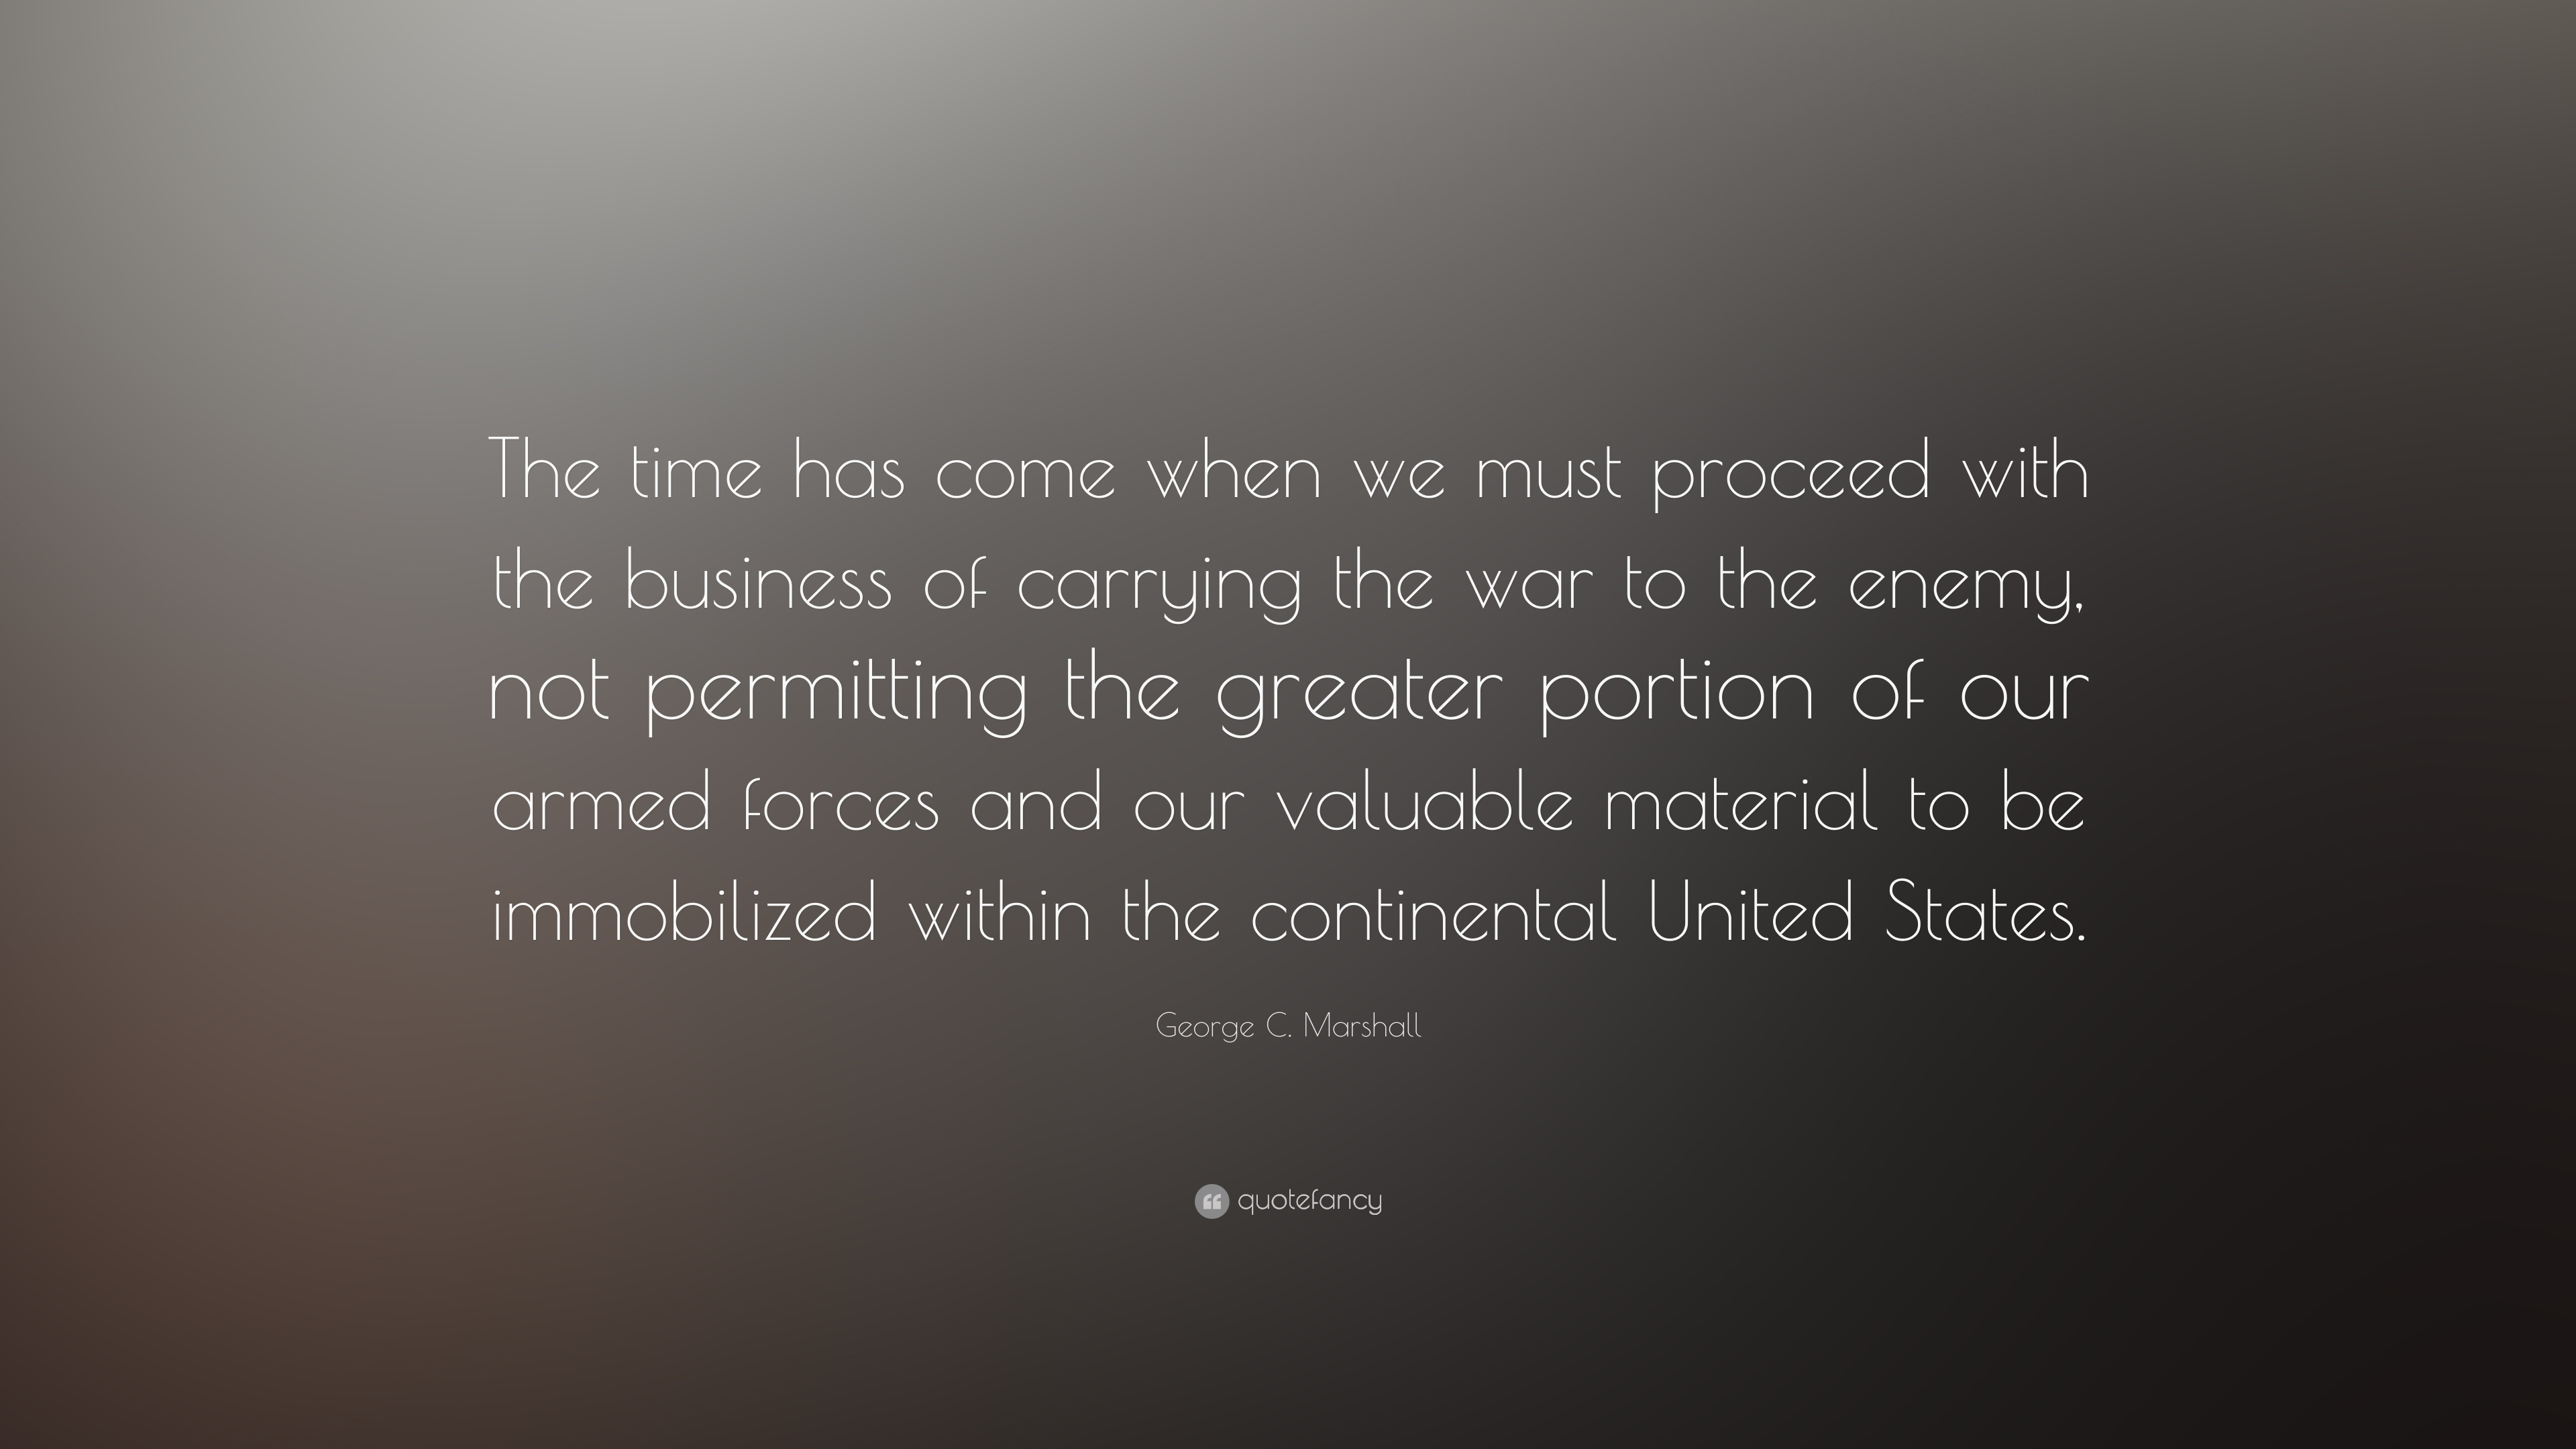 General george c marshall quotes - George C Marshall Quote The Time Has Come When We Must Proceed With